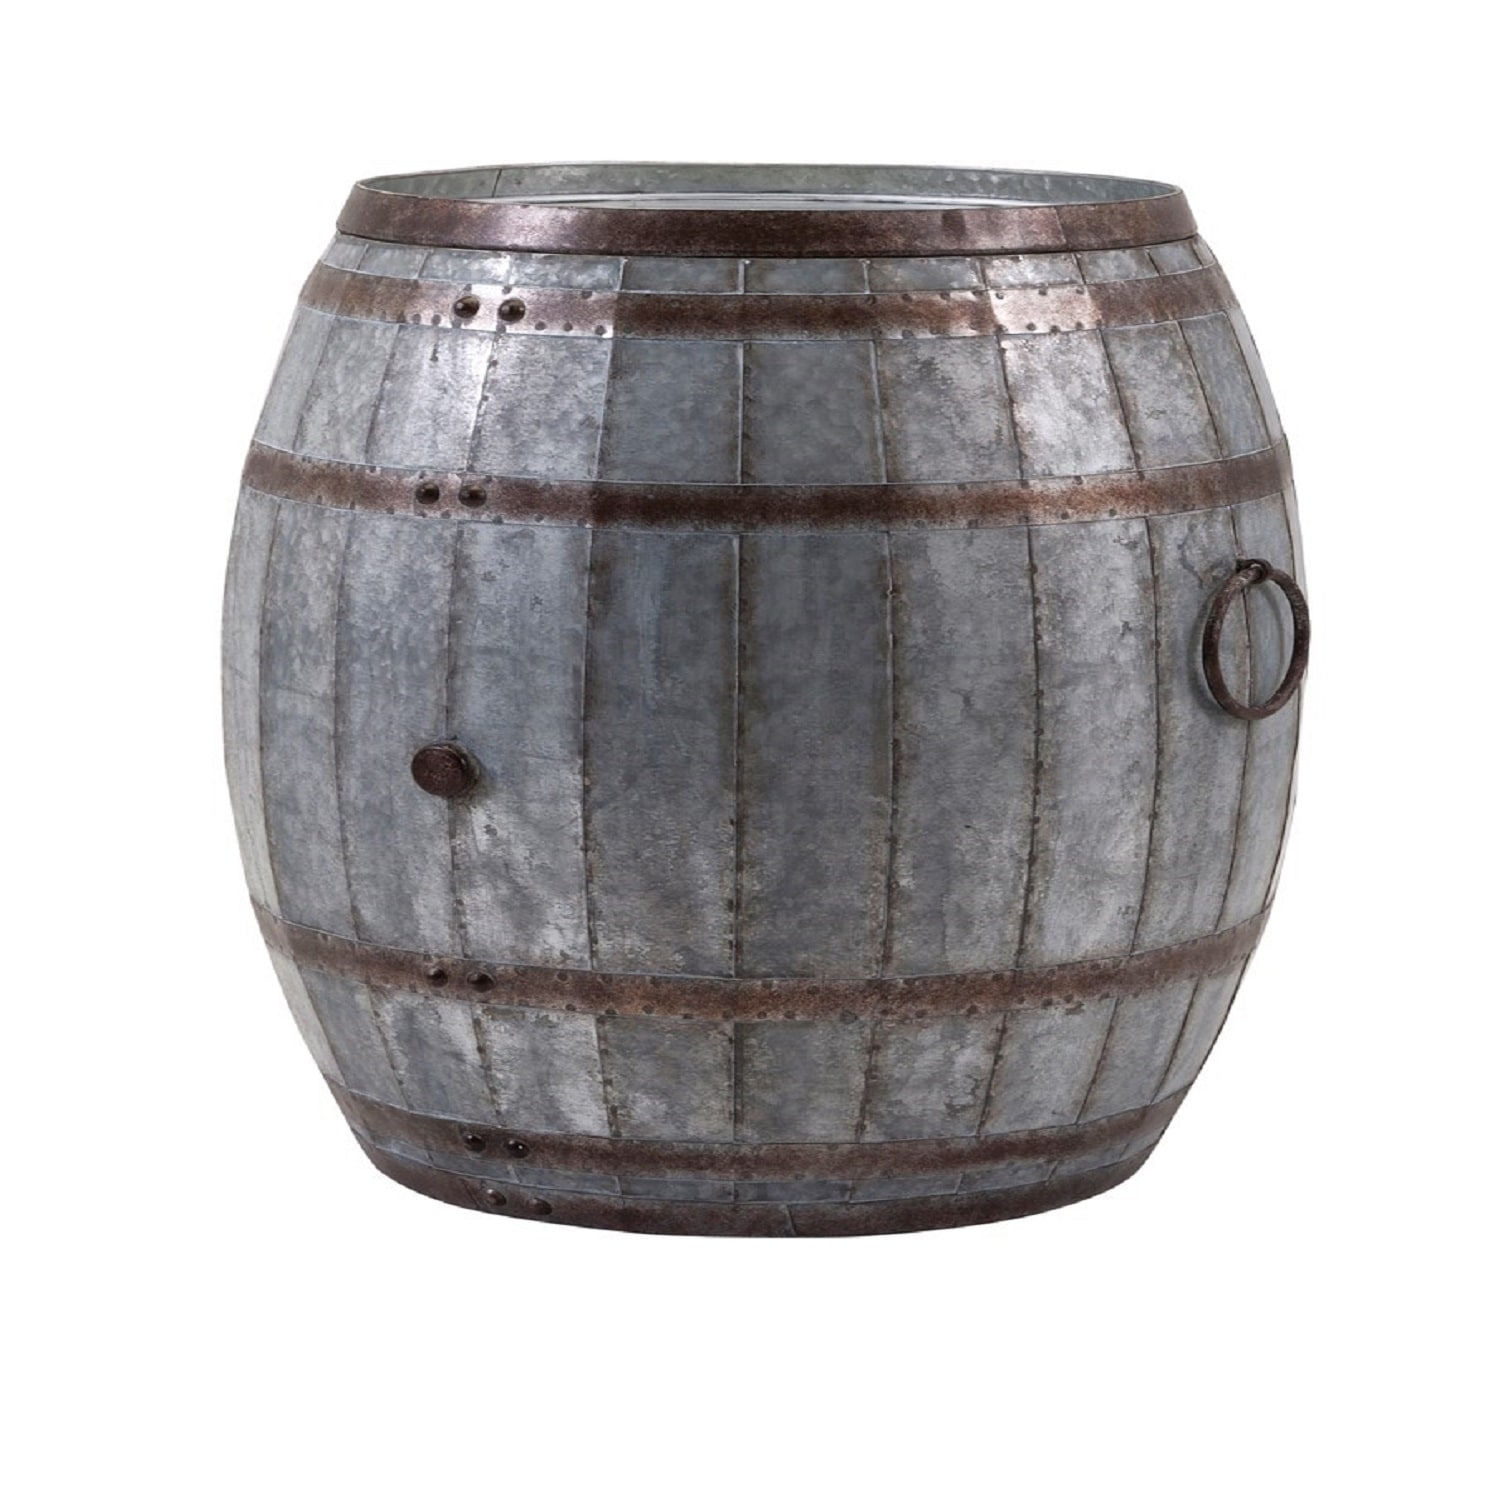 26 Pewter Gray And Mocha Brown Rustic Decorative Wine Barrel Storage Table N A